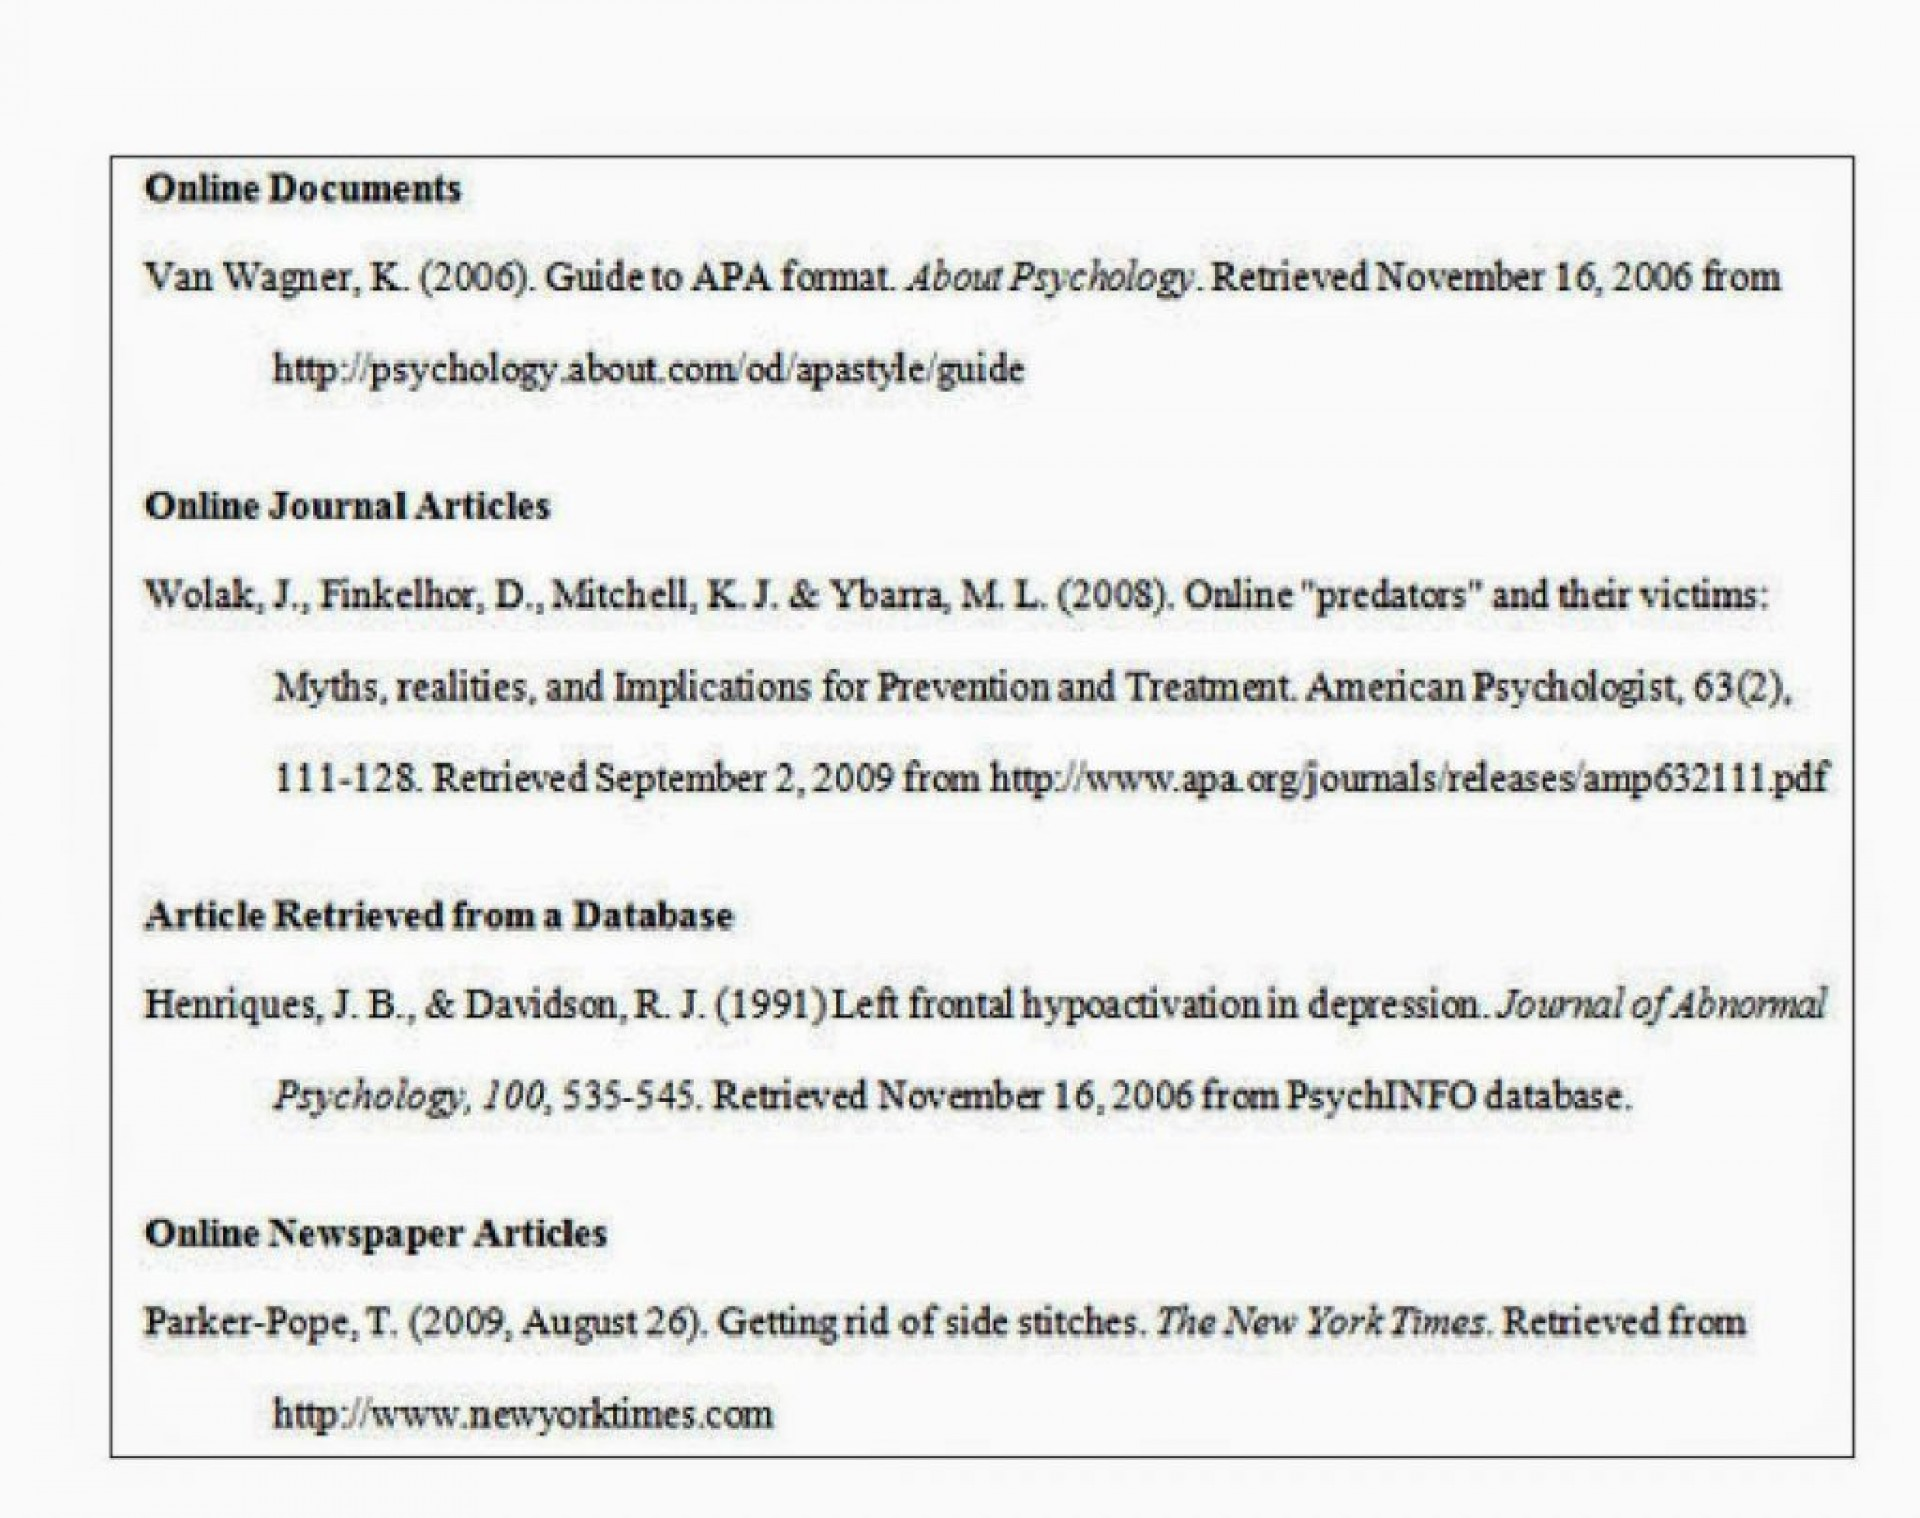 018 Career Research Paper Outline Example 20research Apa Format 6th Edition Sample20 Astounding 1920